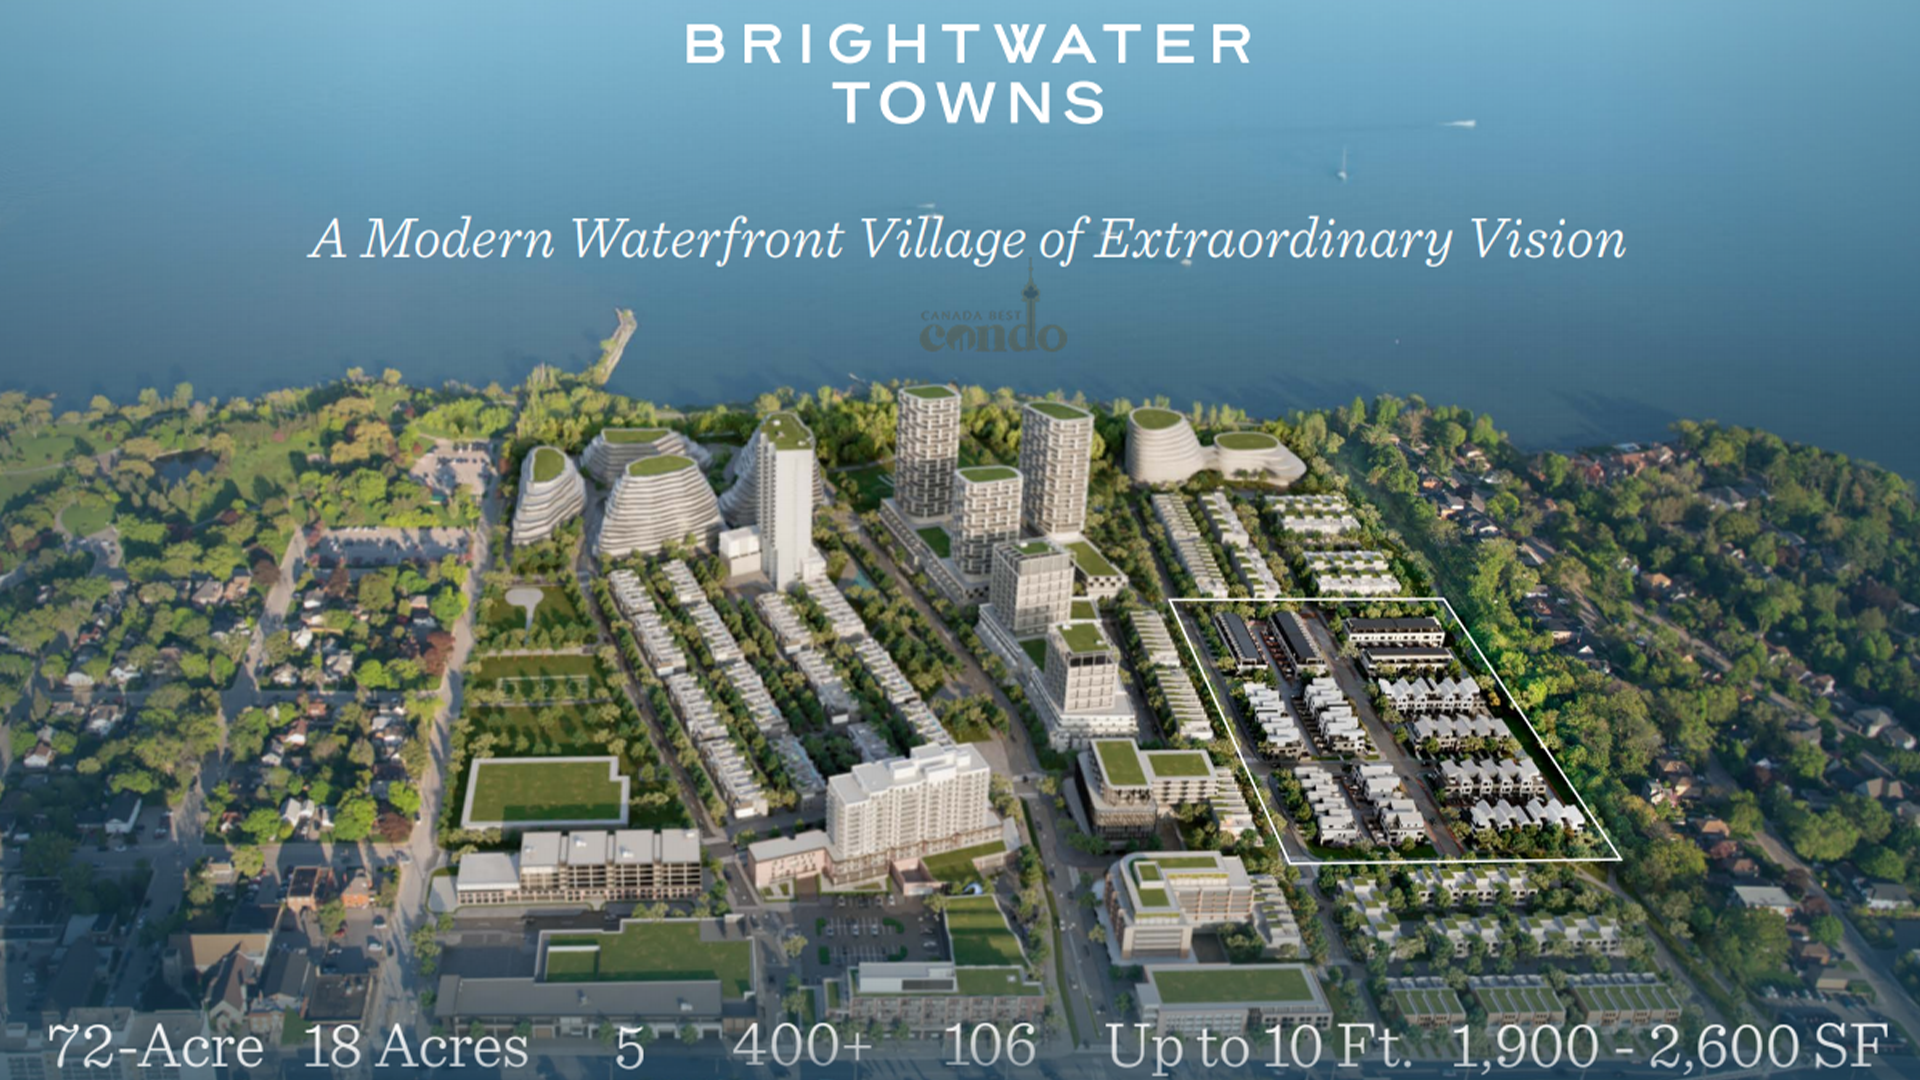 Brightwater Towns site plan 1080p